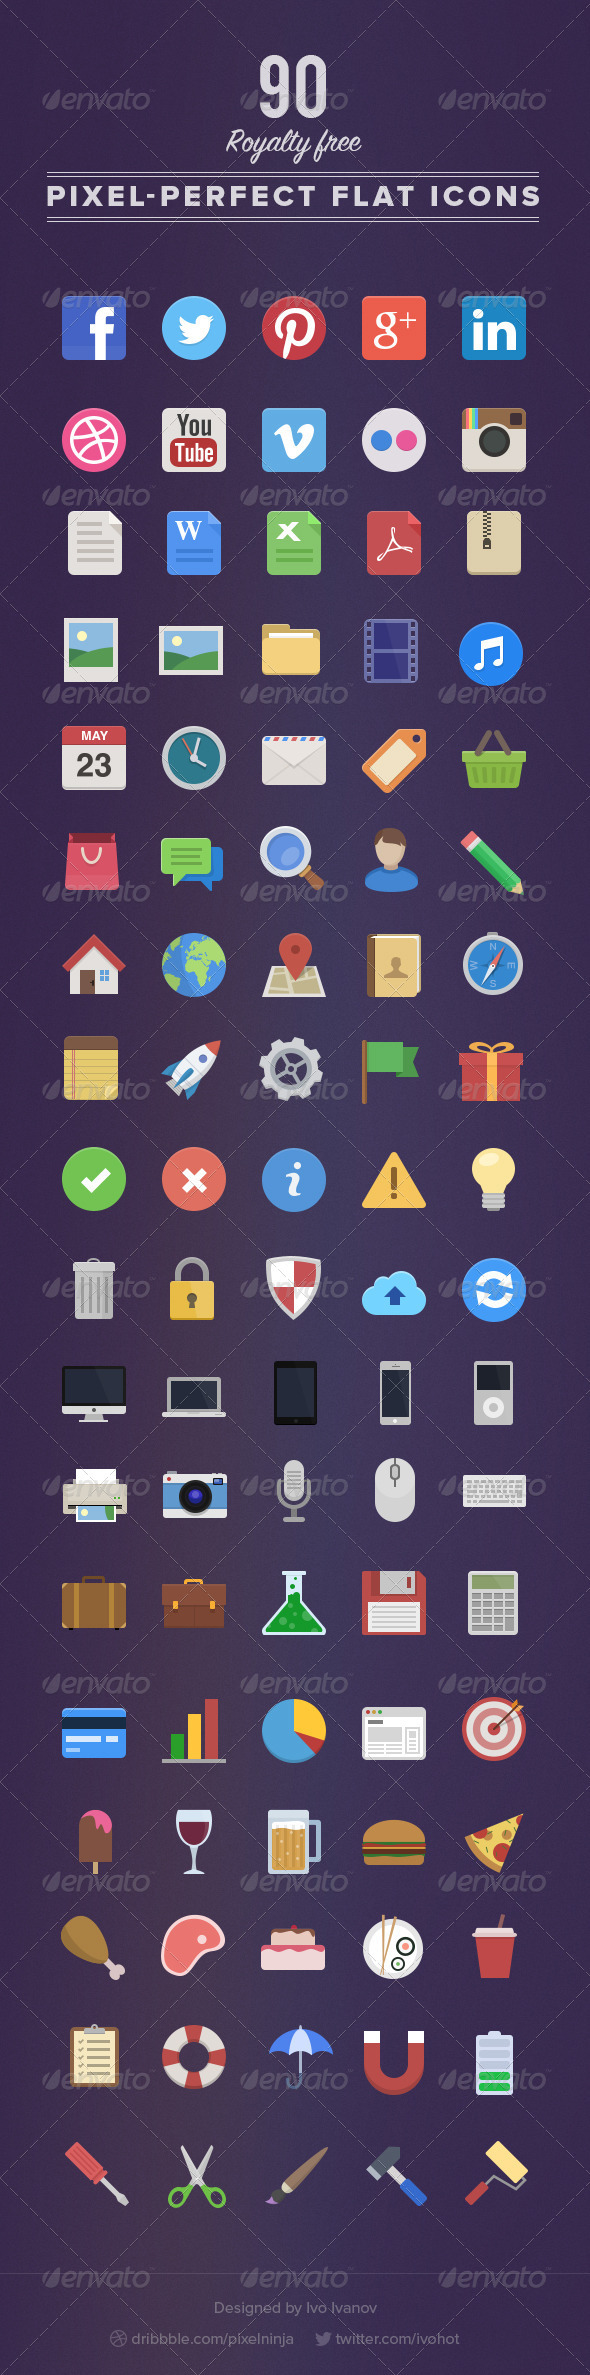 90 Royalty Free Flat Icons - Icons